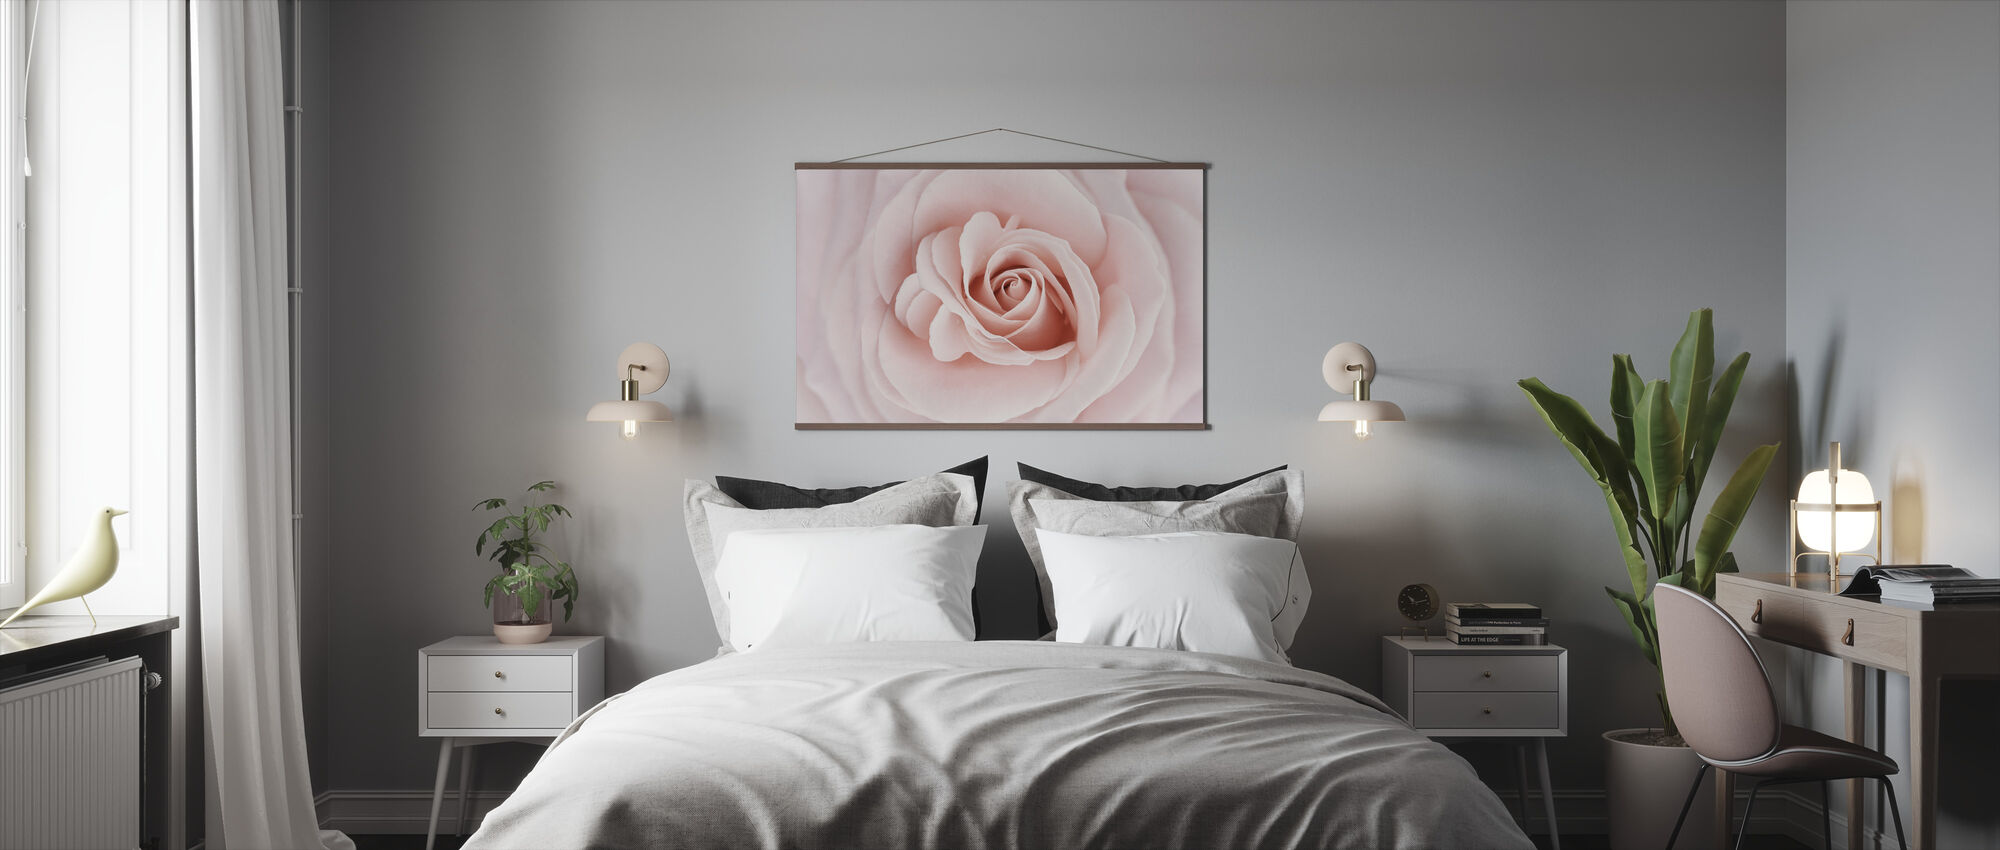 Soft Rose in Peach Pink Shades - Poster - Bedroom